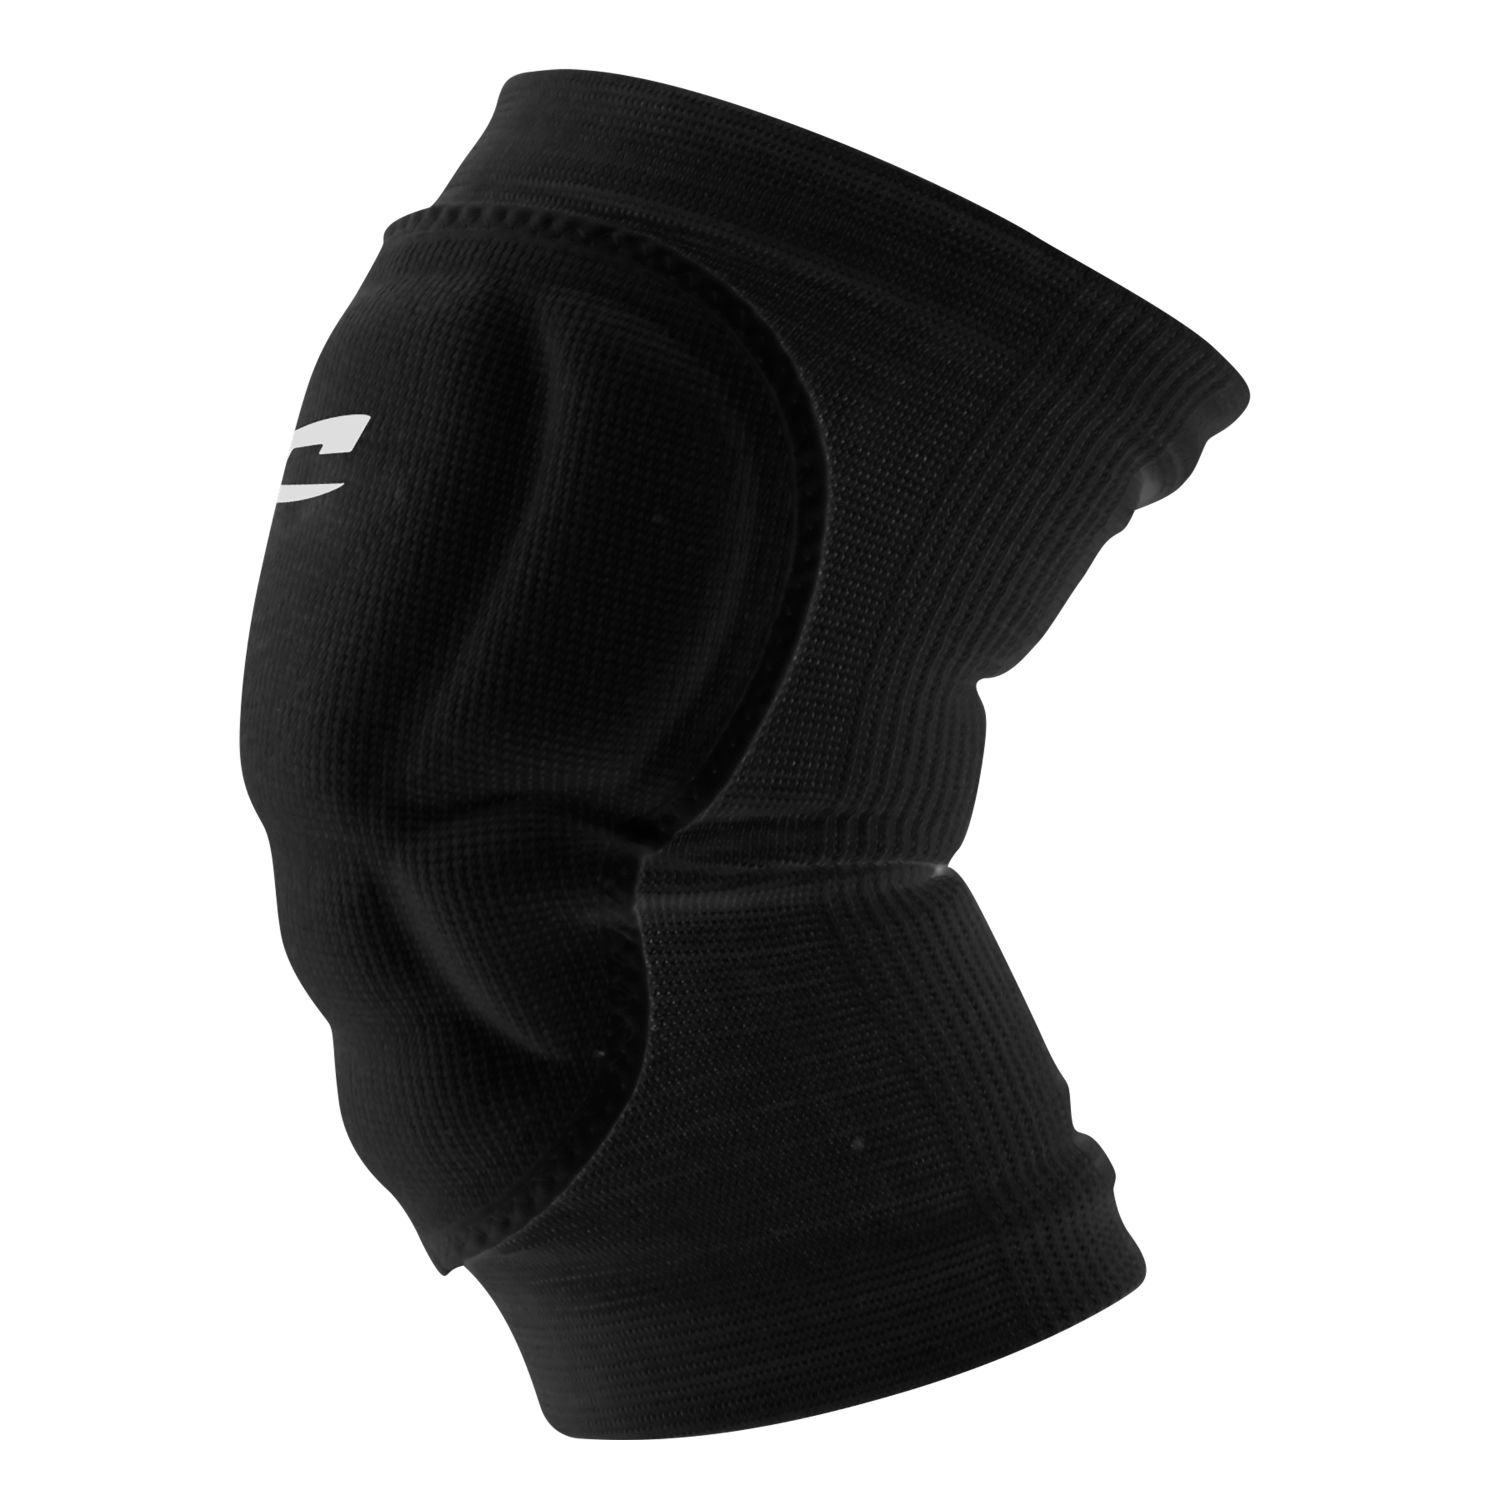 Champro Adult High Compression Low Profile Knee Pad Black